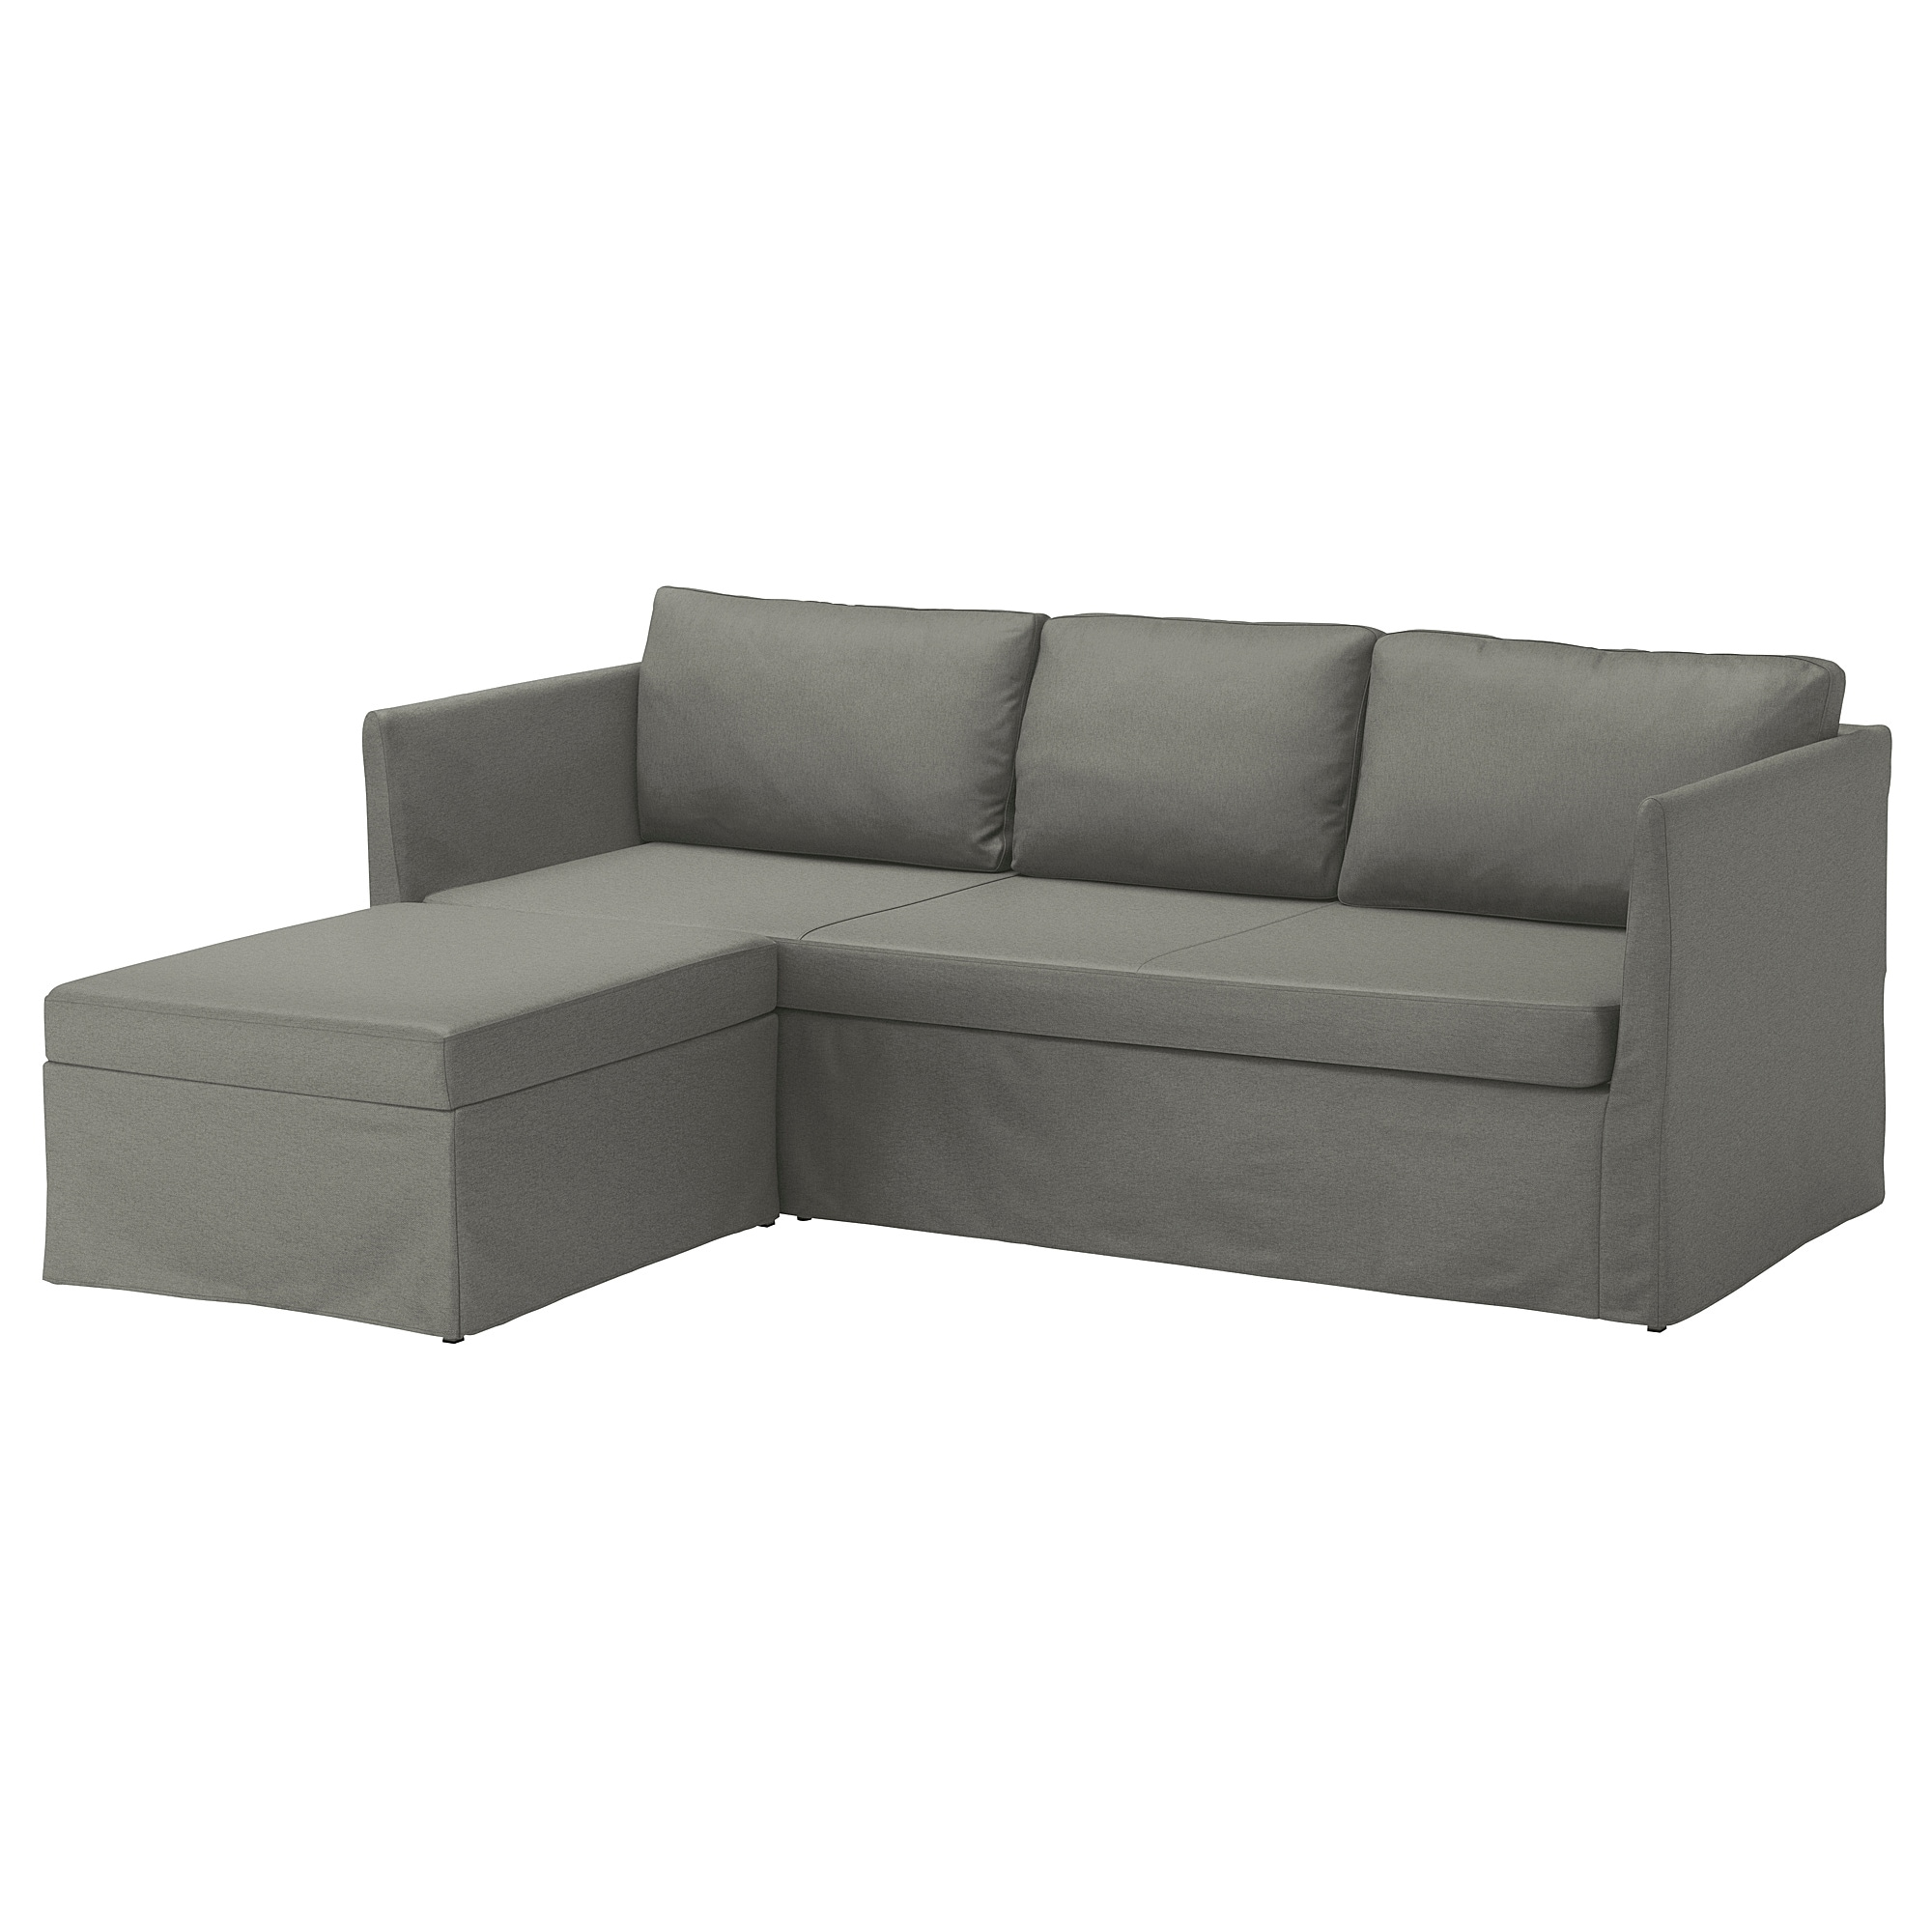 BRÅTHULT SANDBACKEN Corner sofa-bed, Borred gray-green